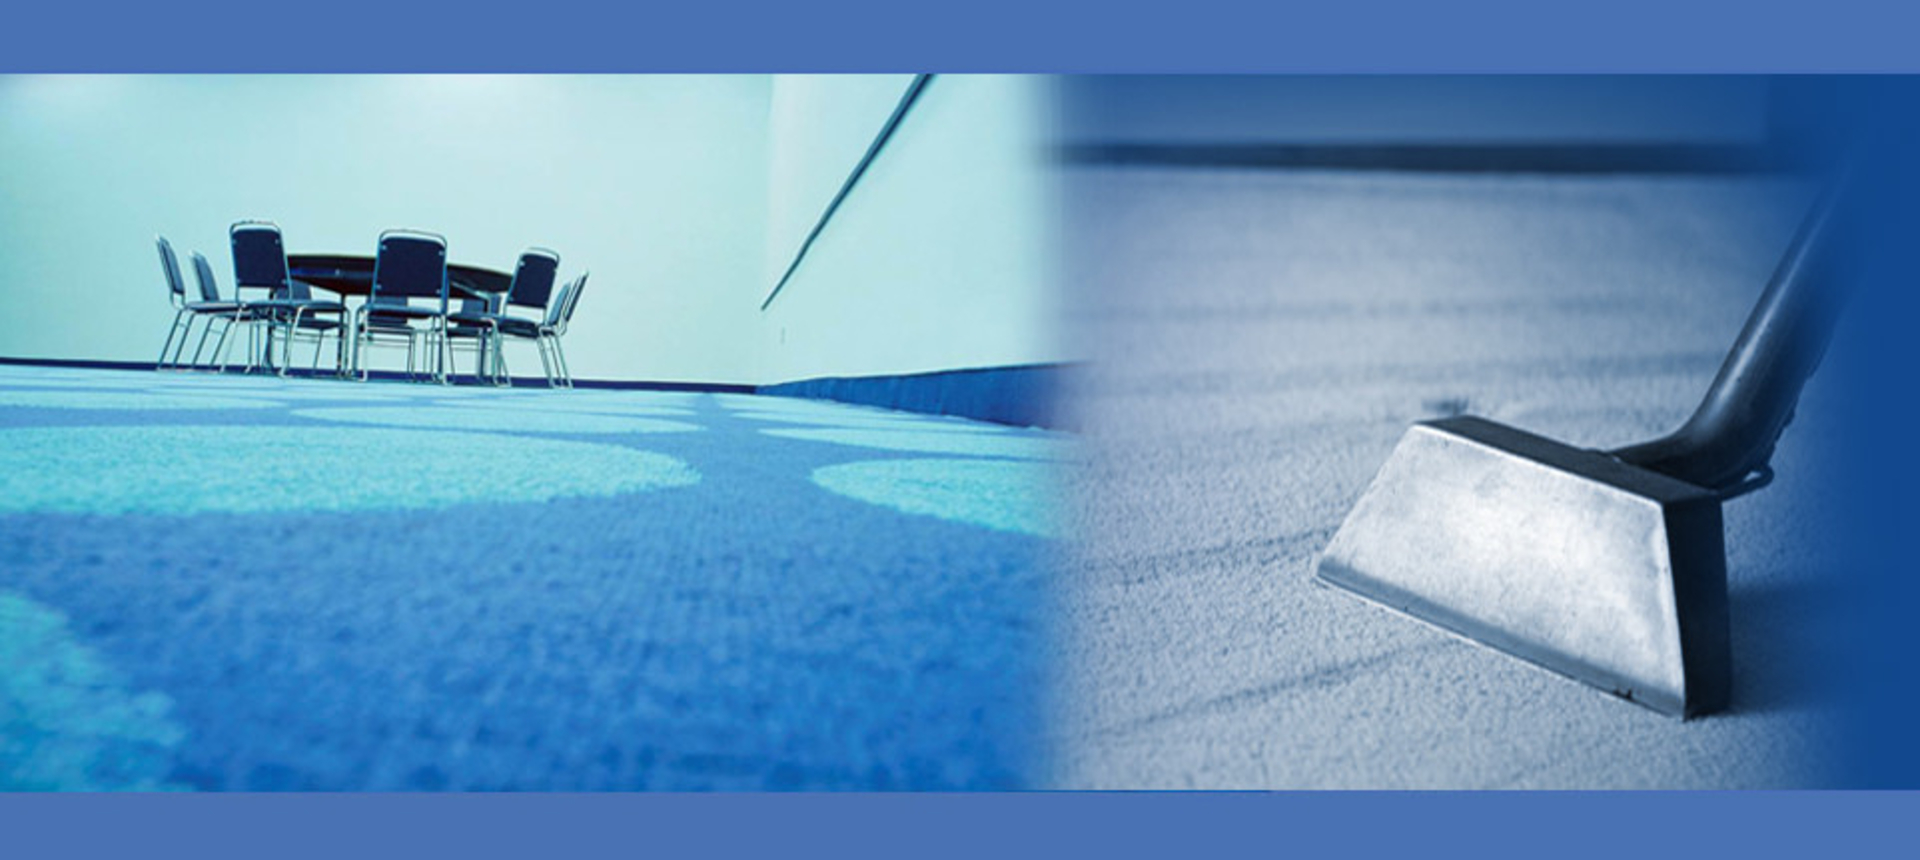 Getting your carpets professional cleaned by carpet cleaners garden grove image